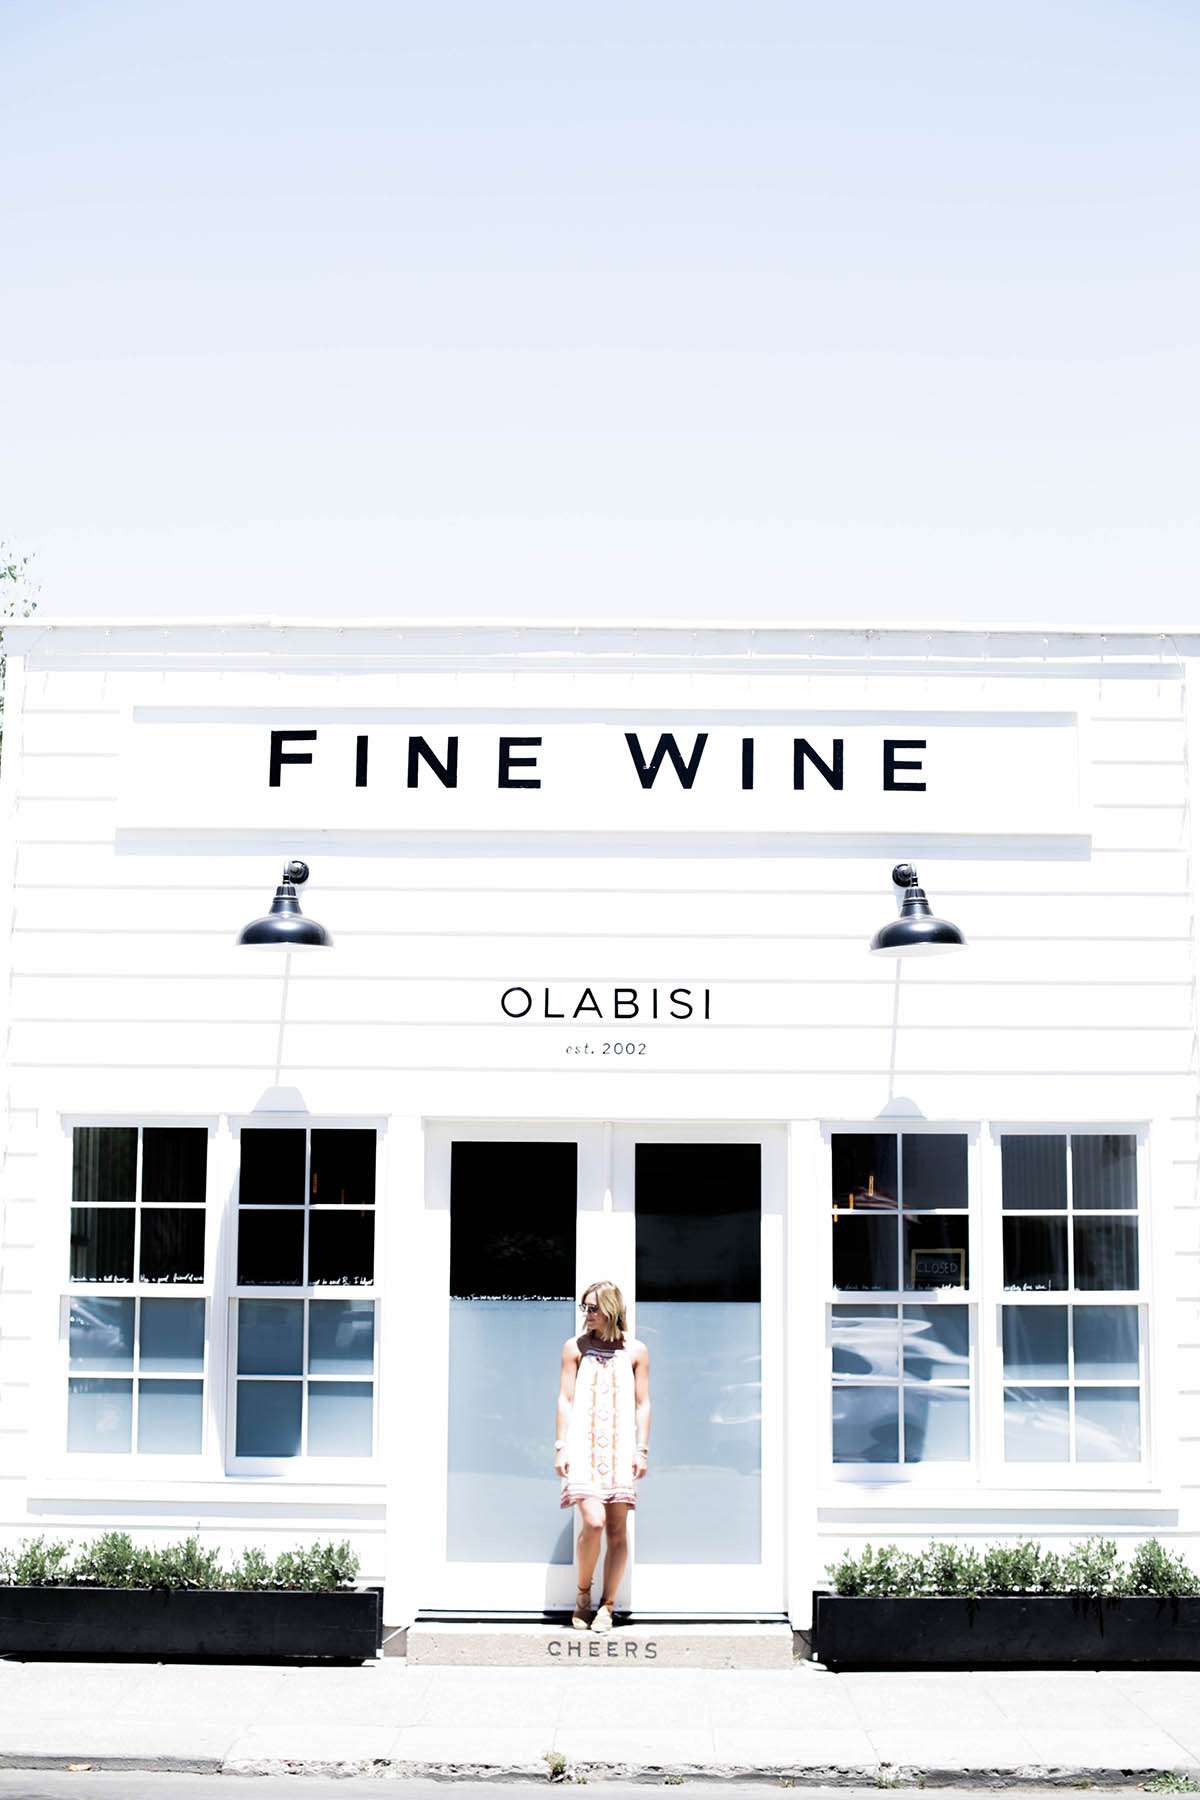 wine tasting outfit Urban Outfitters Ecote T-back dress at Olabisi tasting room Calistoga